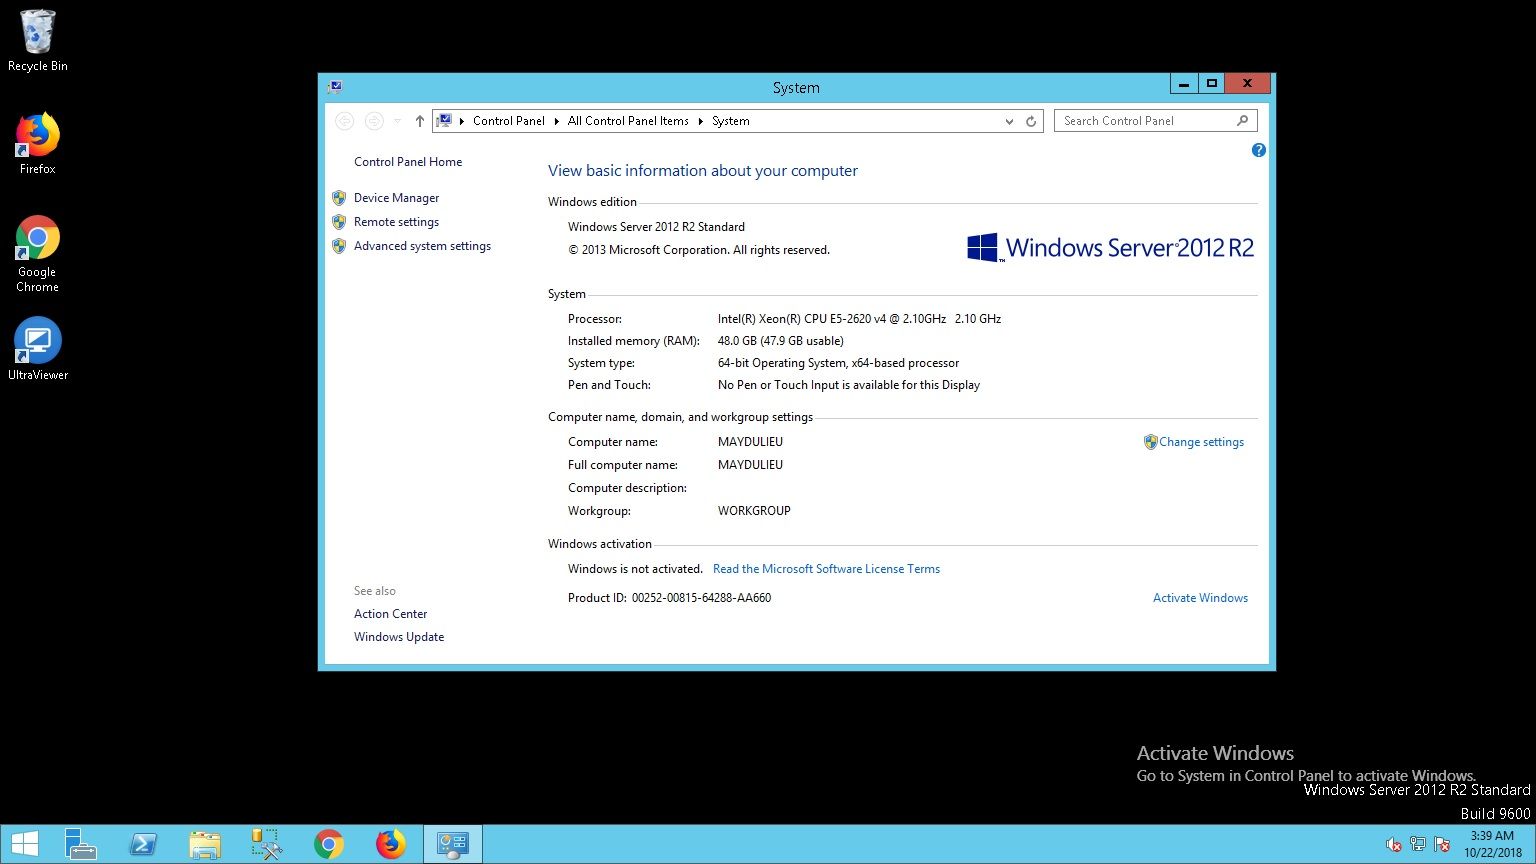 GET FREE RDP TOTALLY FREE: windows 7 4gb for free subscribe to my